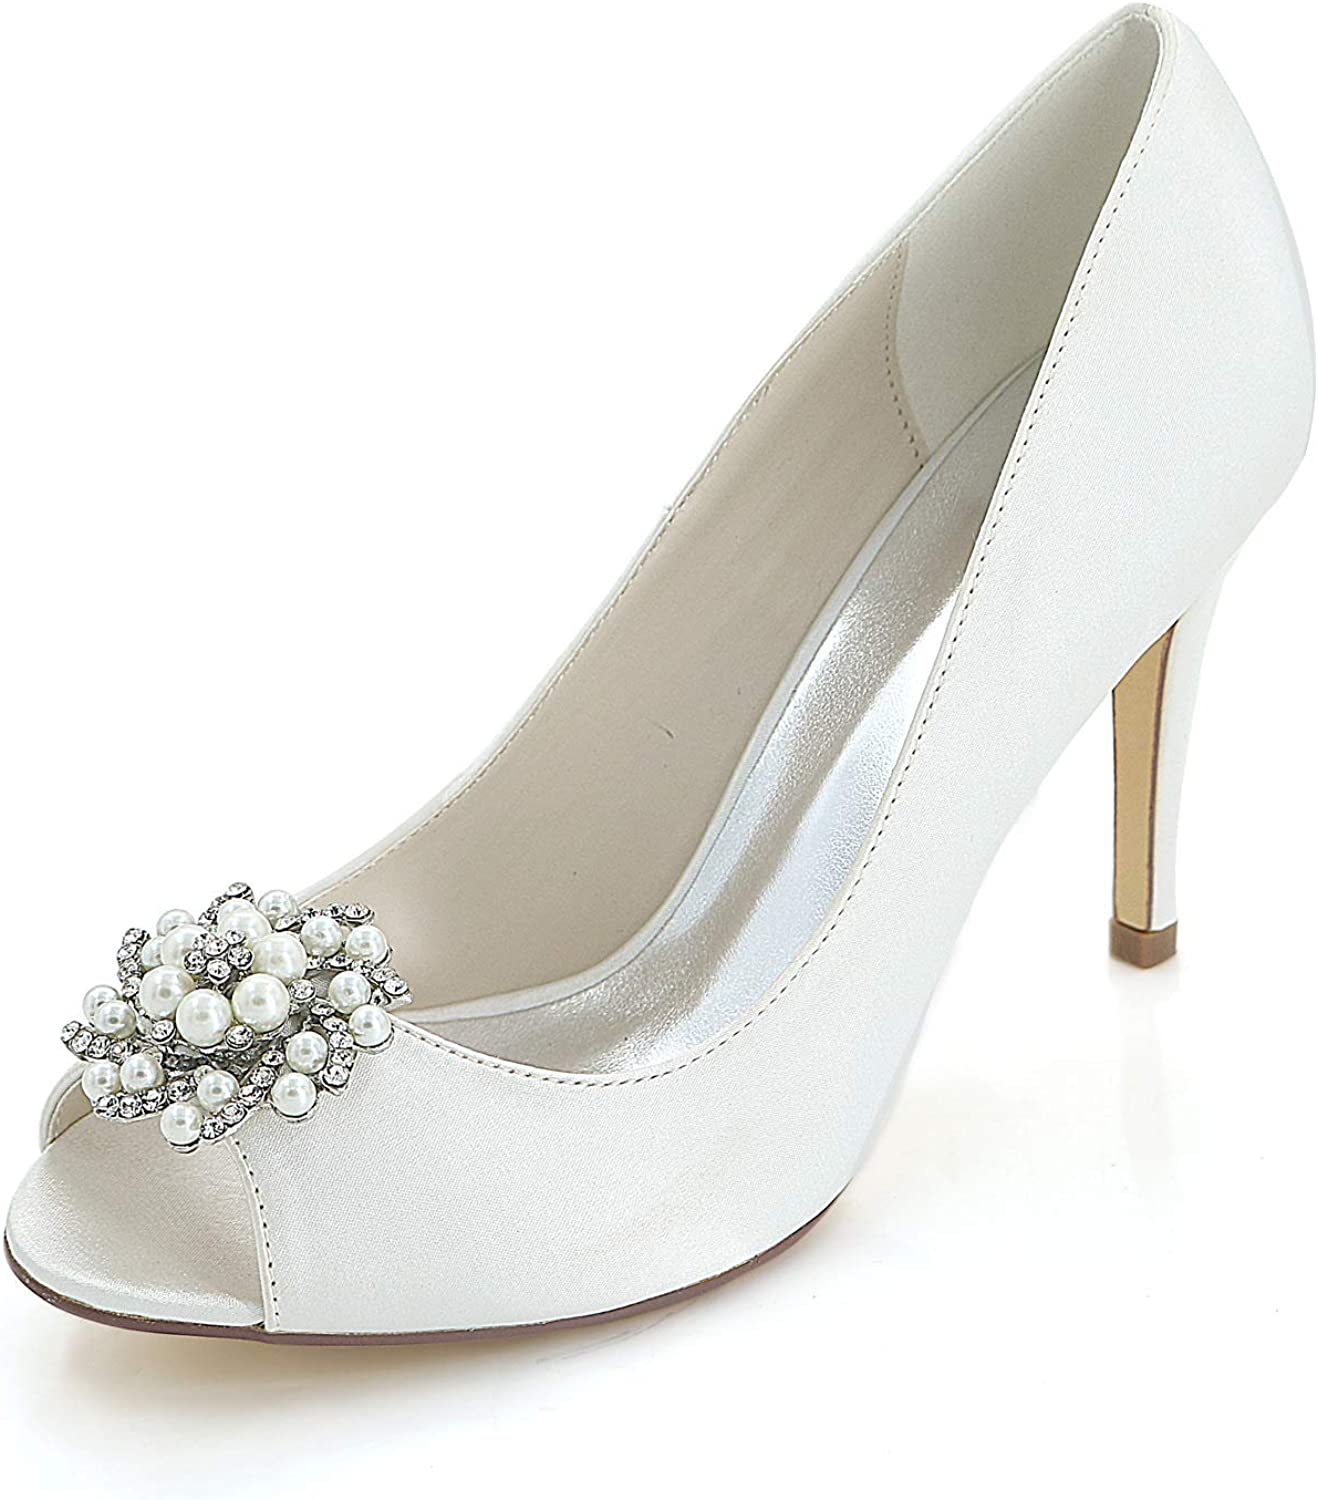 CCBubble High Heels Satin Bridal Pumps Peep Toe Crystals Formal Party shoes Woman Y5623-12W